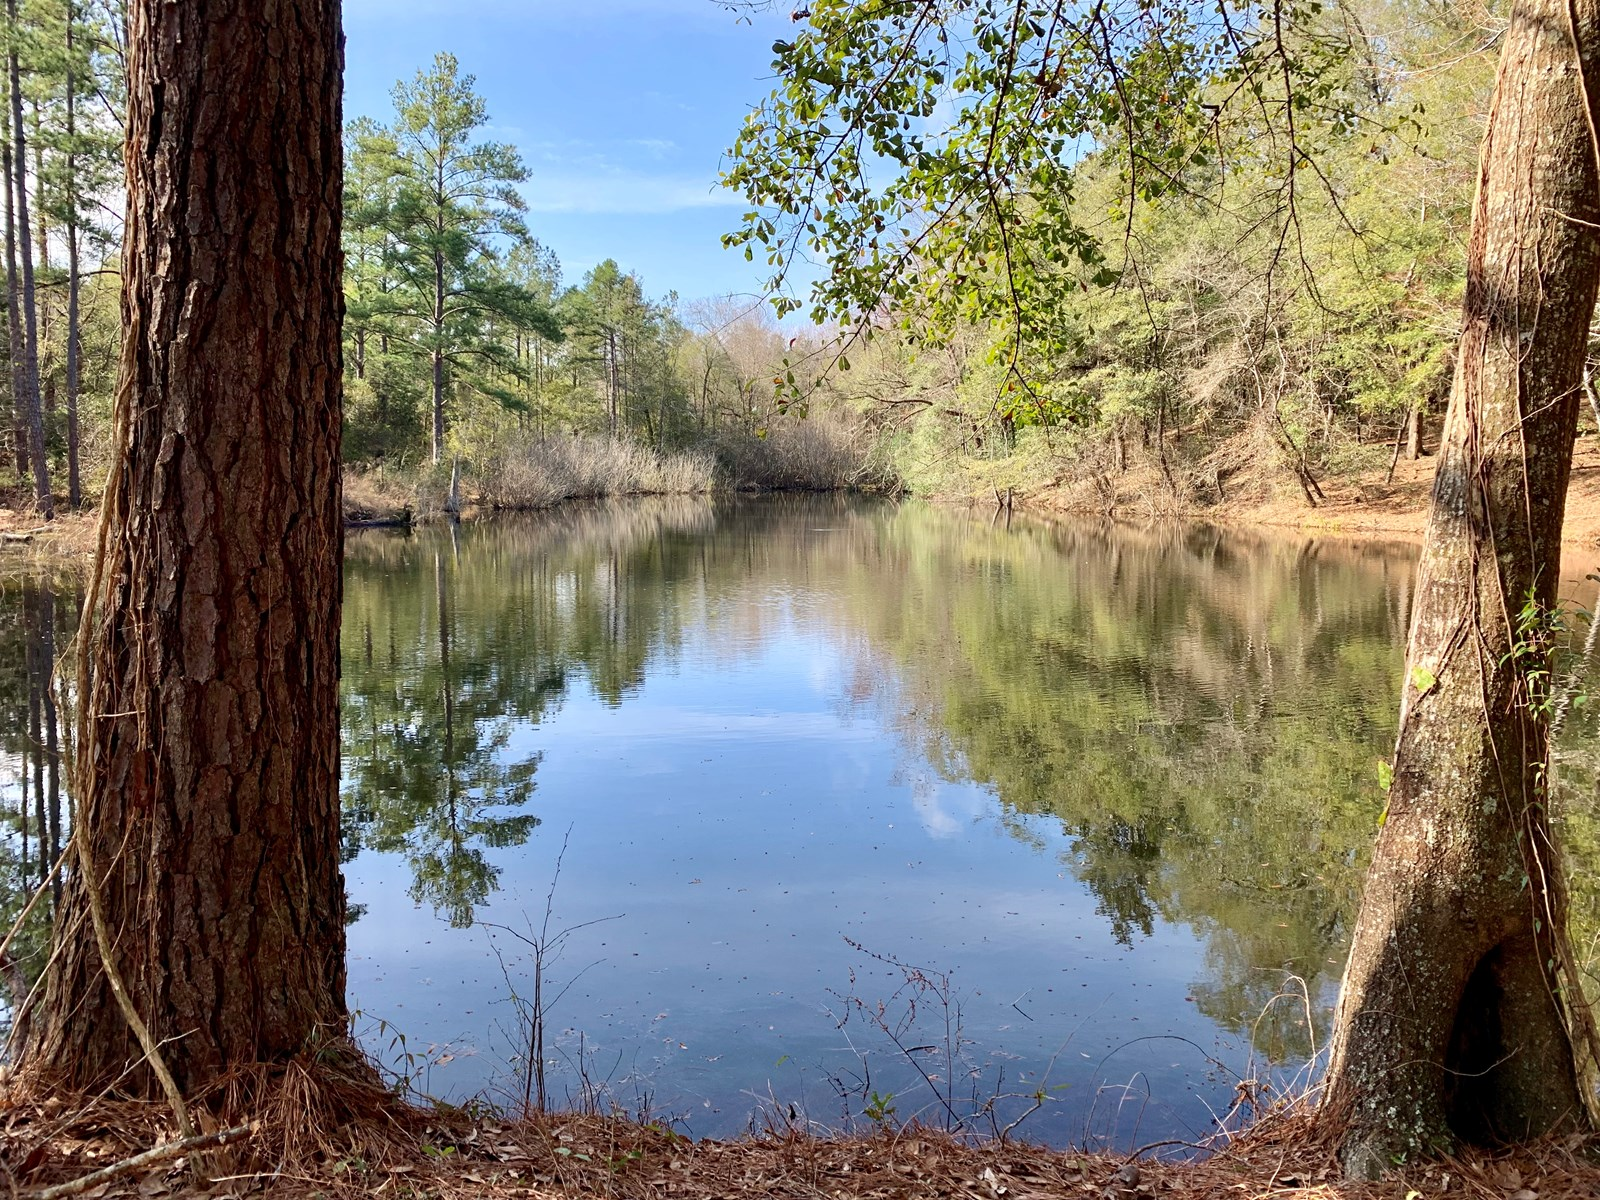 115 ACRES FOR SALE HEADLAND, ALABAMA